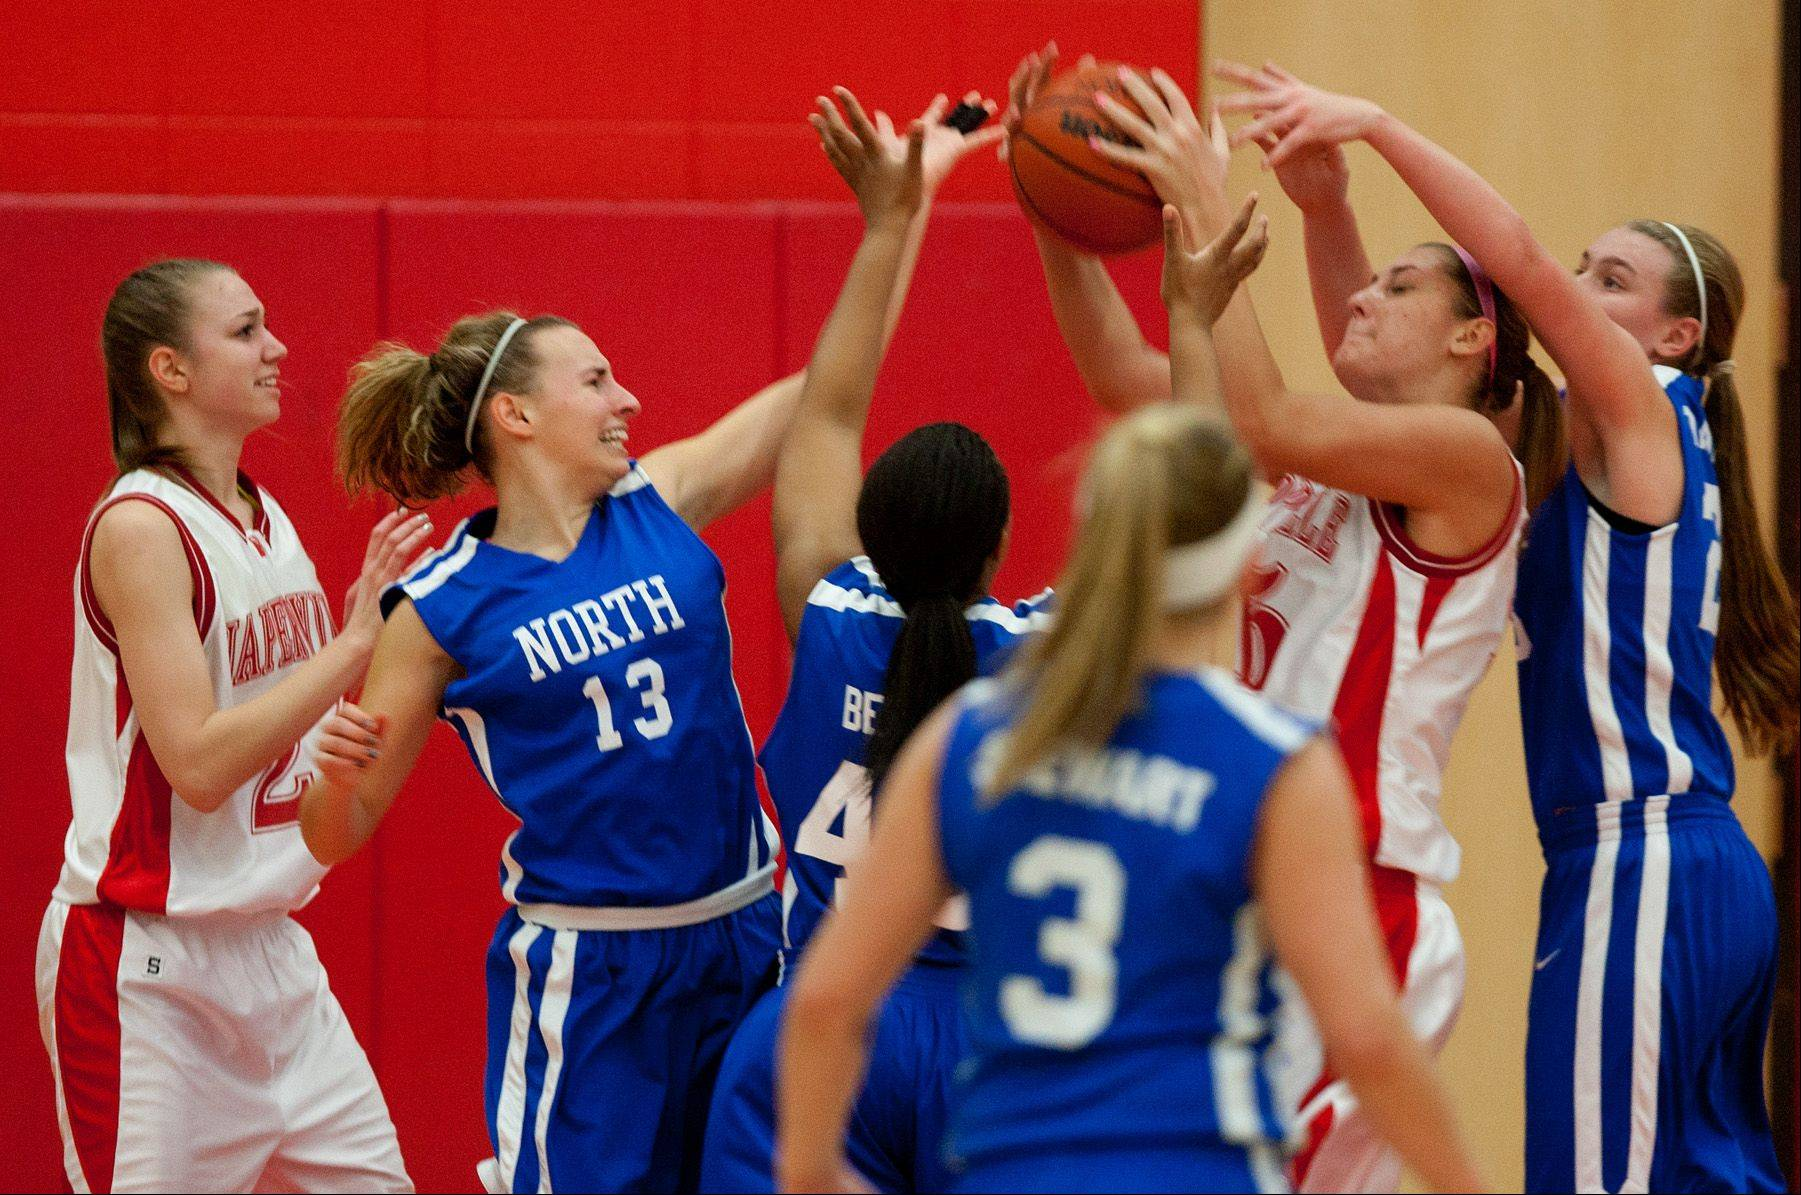 Naperville Central's Victoria Trowbridge grabs a defensive rebound over Wheaton North on Saturday in Naperville.